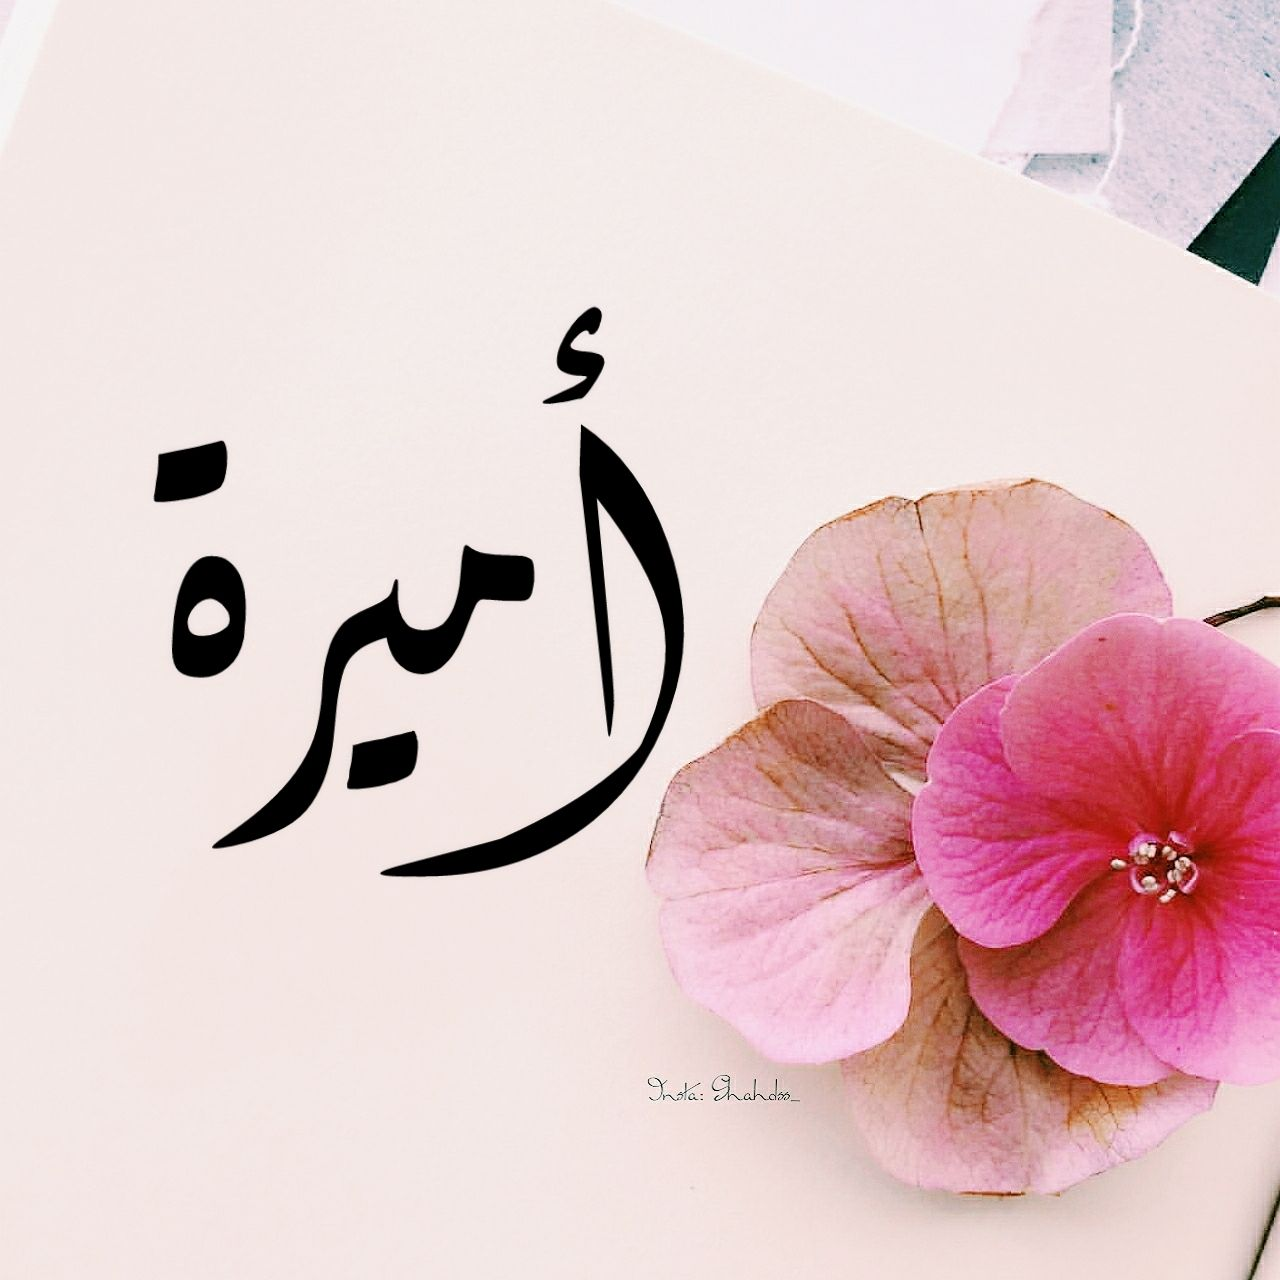 Discovered By شـ ھــ ـ د Shahd Find Images And Videos About صور تصميمي And اسماء On We Heart It The App To Get Lost Image Find Image Home Decor Decals